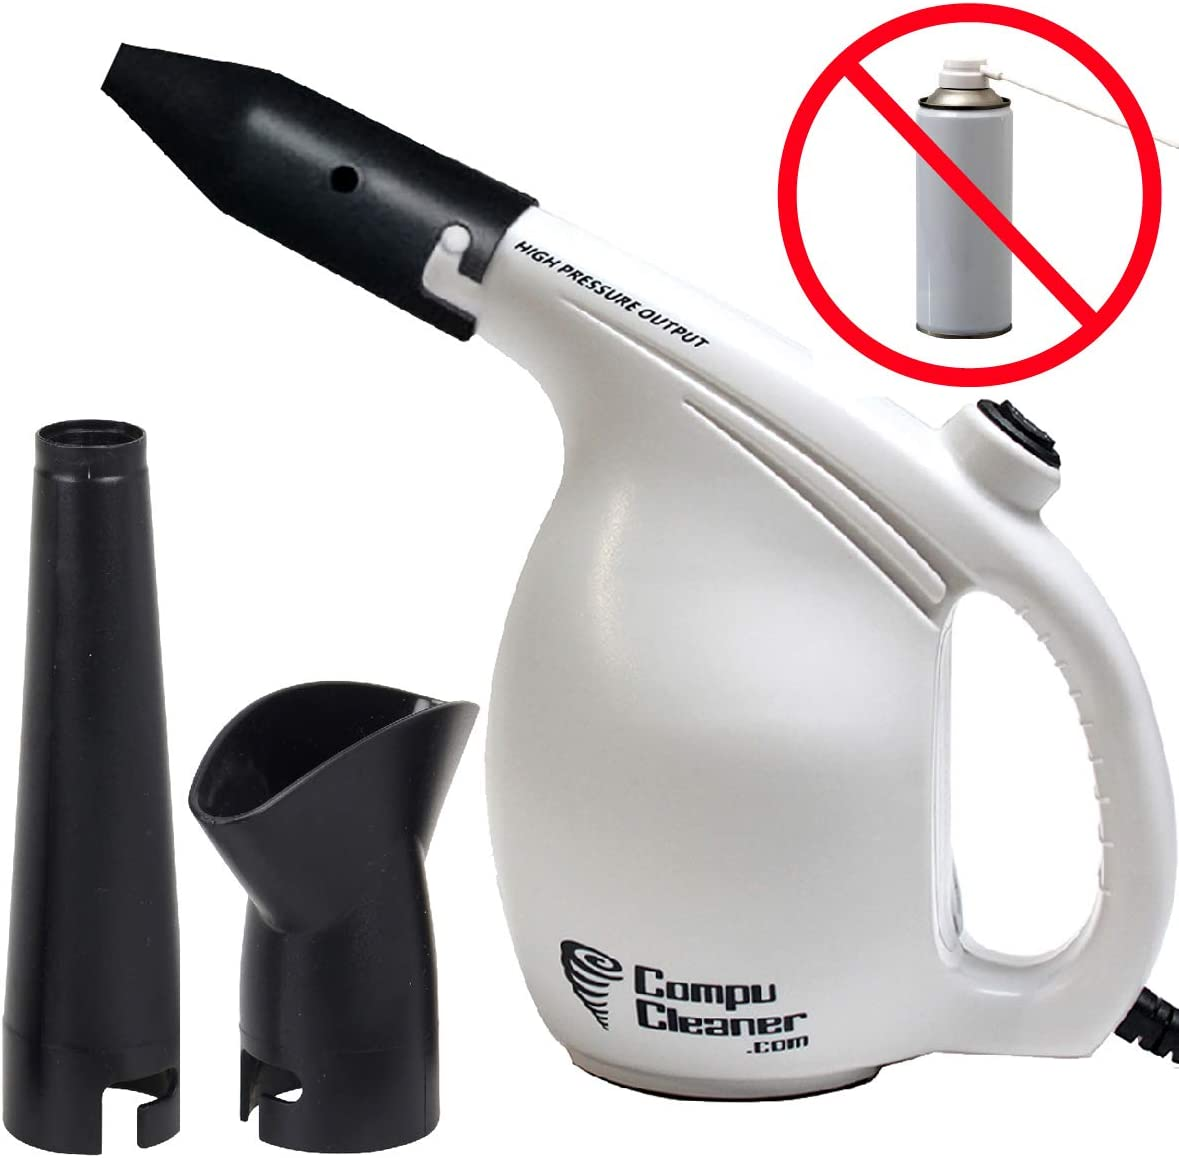 EasyGo Compucleaner 2.0 –Durable ABS Plastic Electric High Pressure Air Duster – Computer Cleaner Blower - Keyboard Cleaner – Electronic Devices and Laptop Cleaner - Replaces Compressed Air Cans